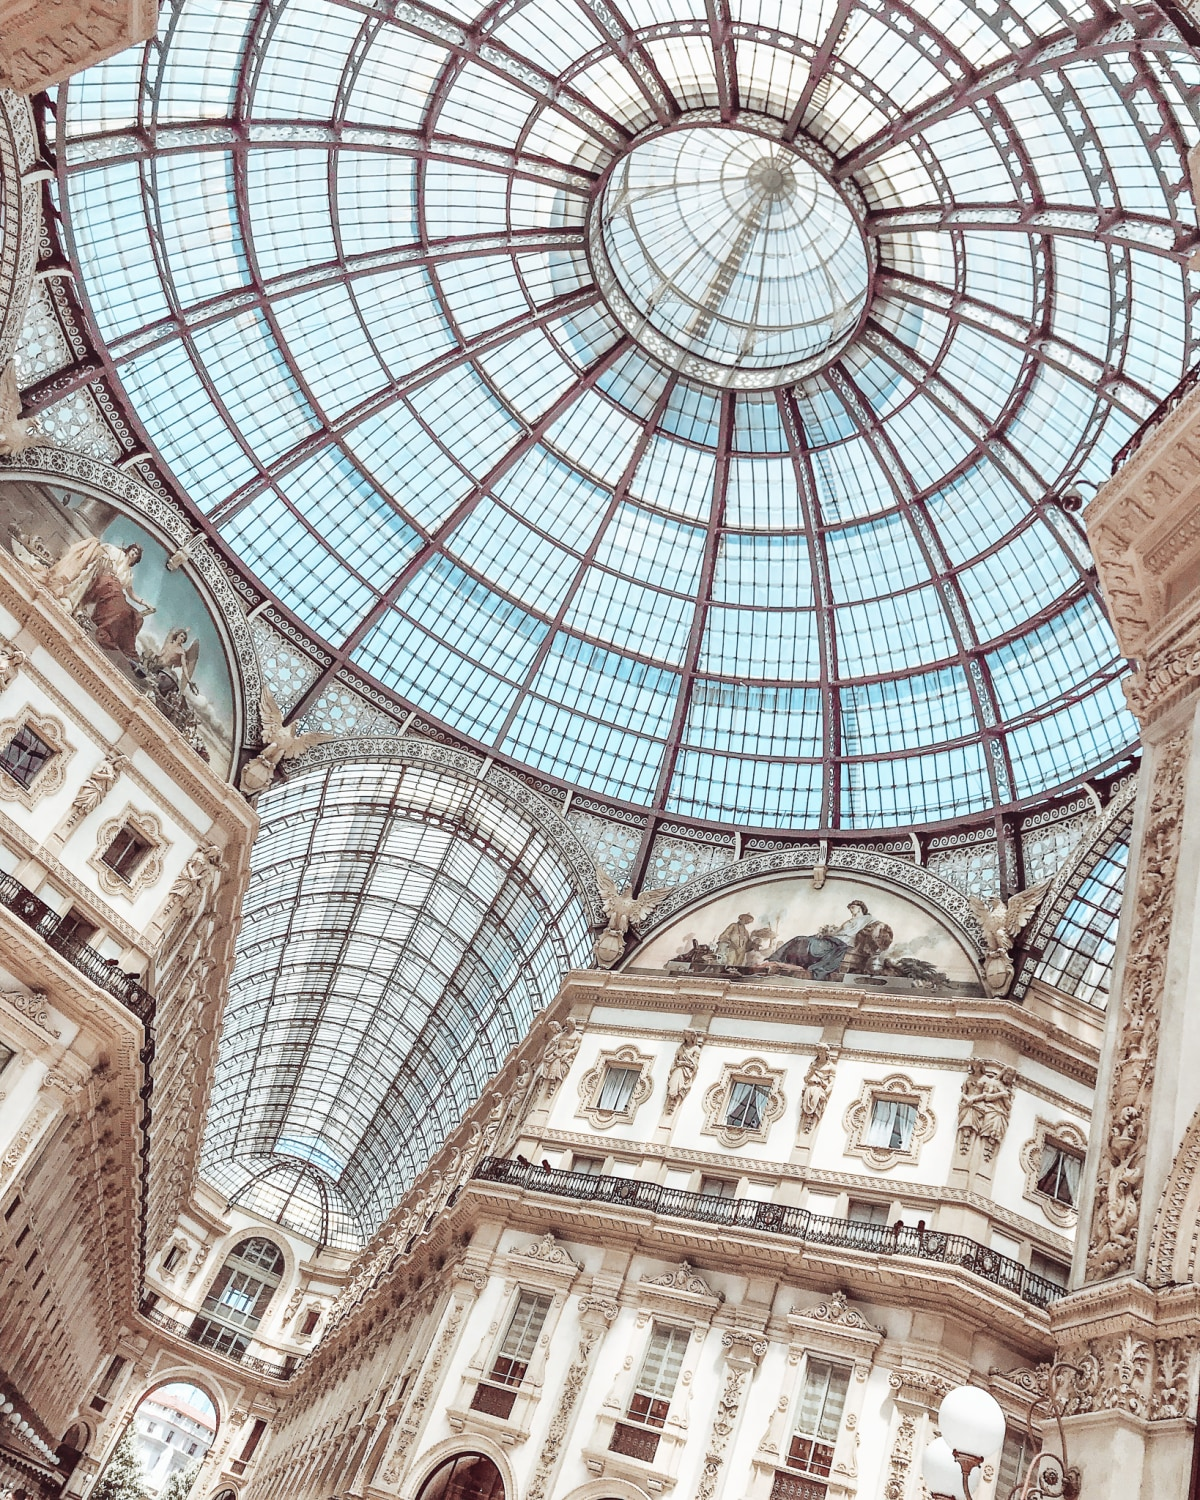 The magnificant glass ceilings and dome